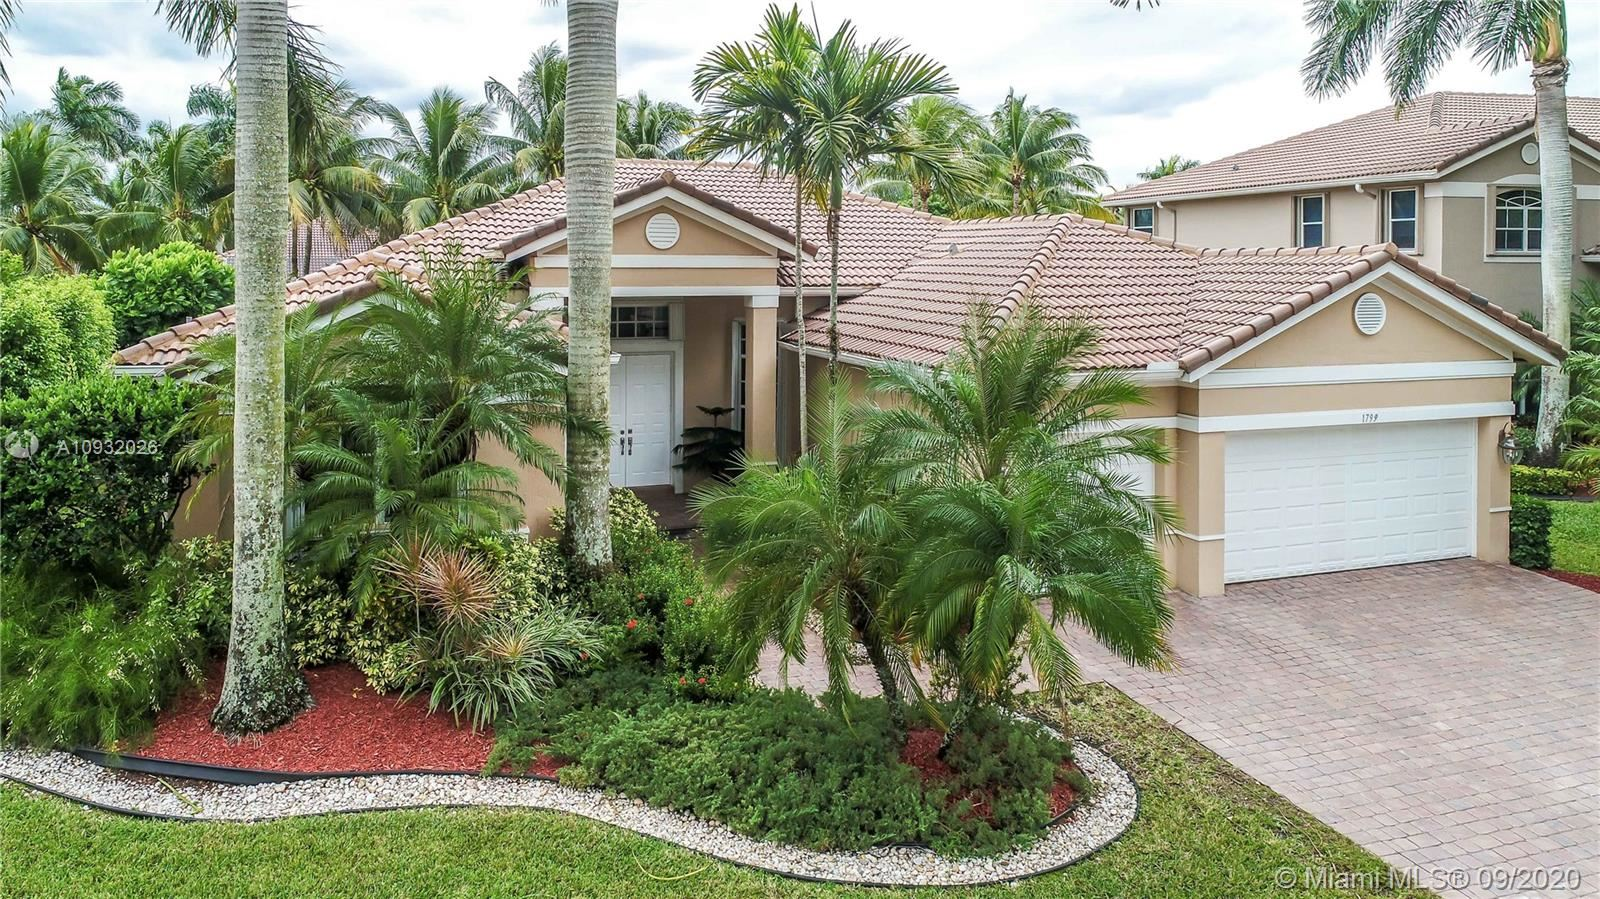 Photo of Weston, FL 33327 (MLS # A10932026)